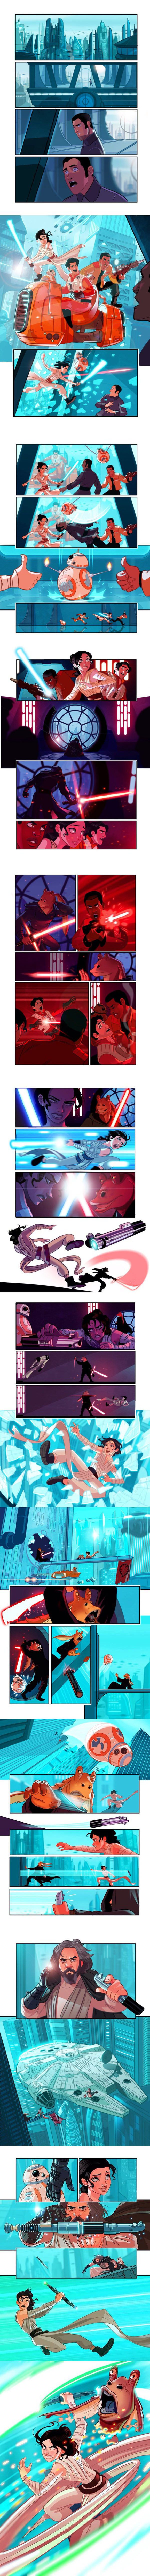 Star Wars Episode 7 1/2 by Stephen Byrne - 9GAG